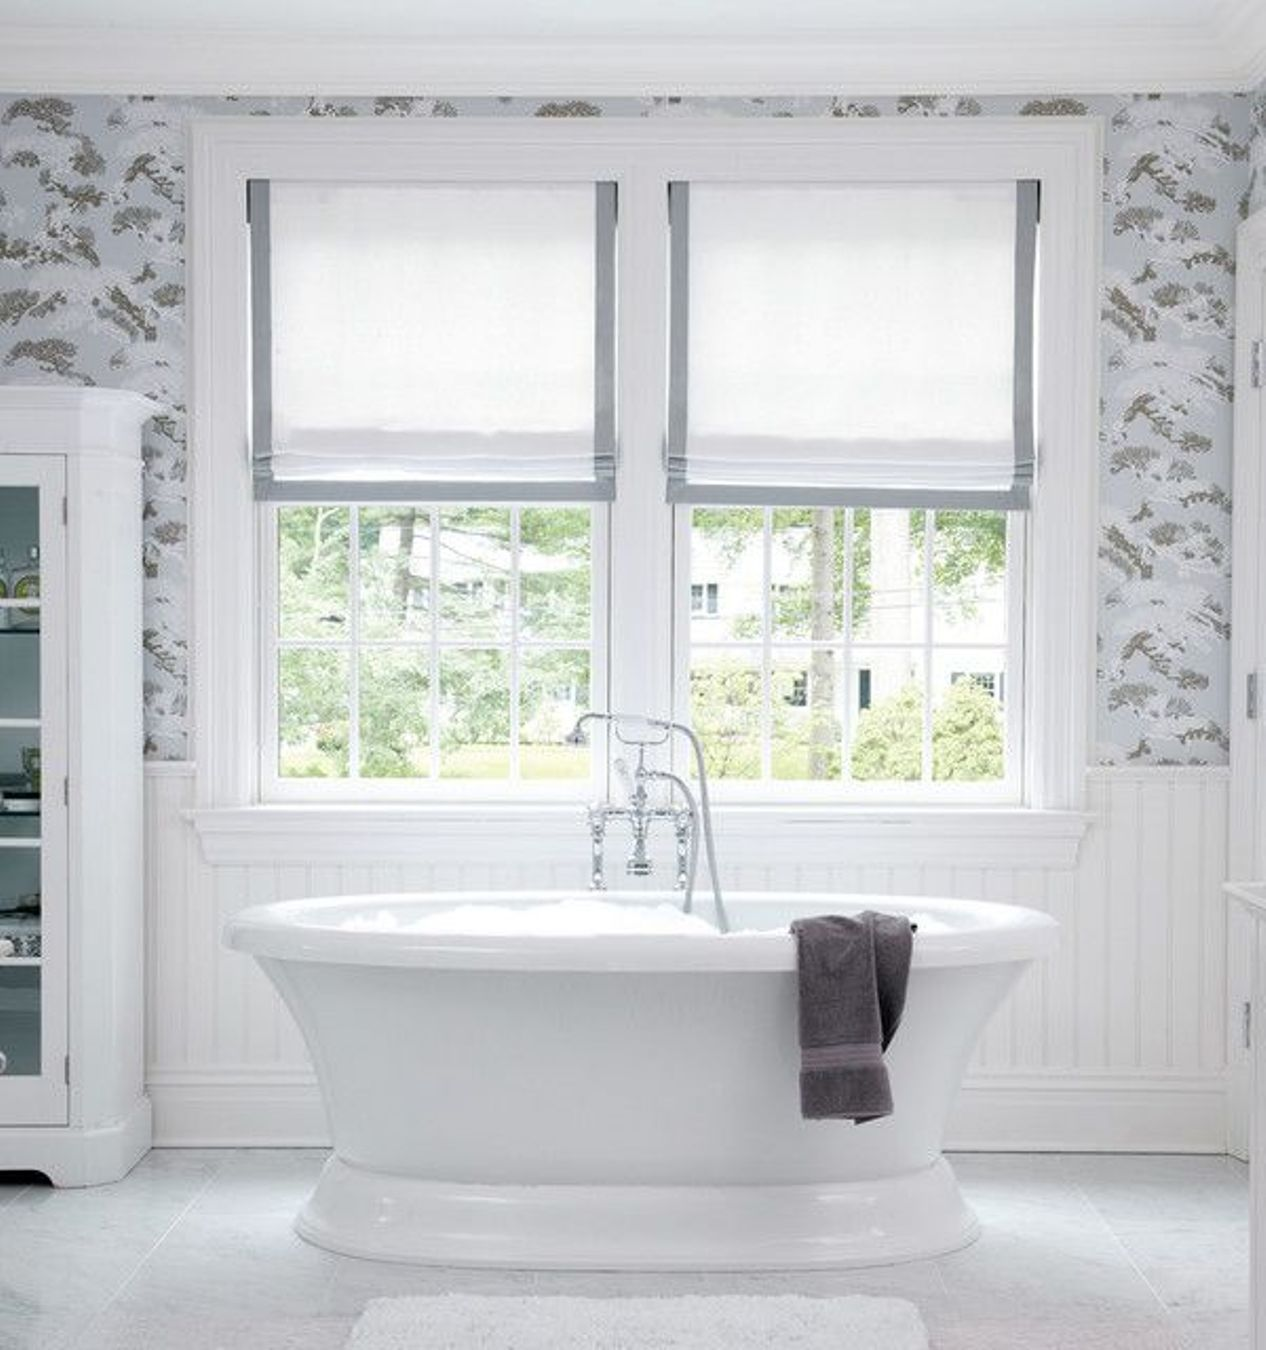 Frosted glass window bathroom - Bathroom Bathroom Window